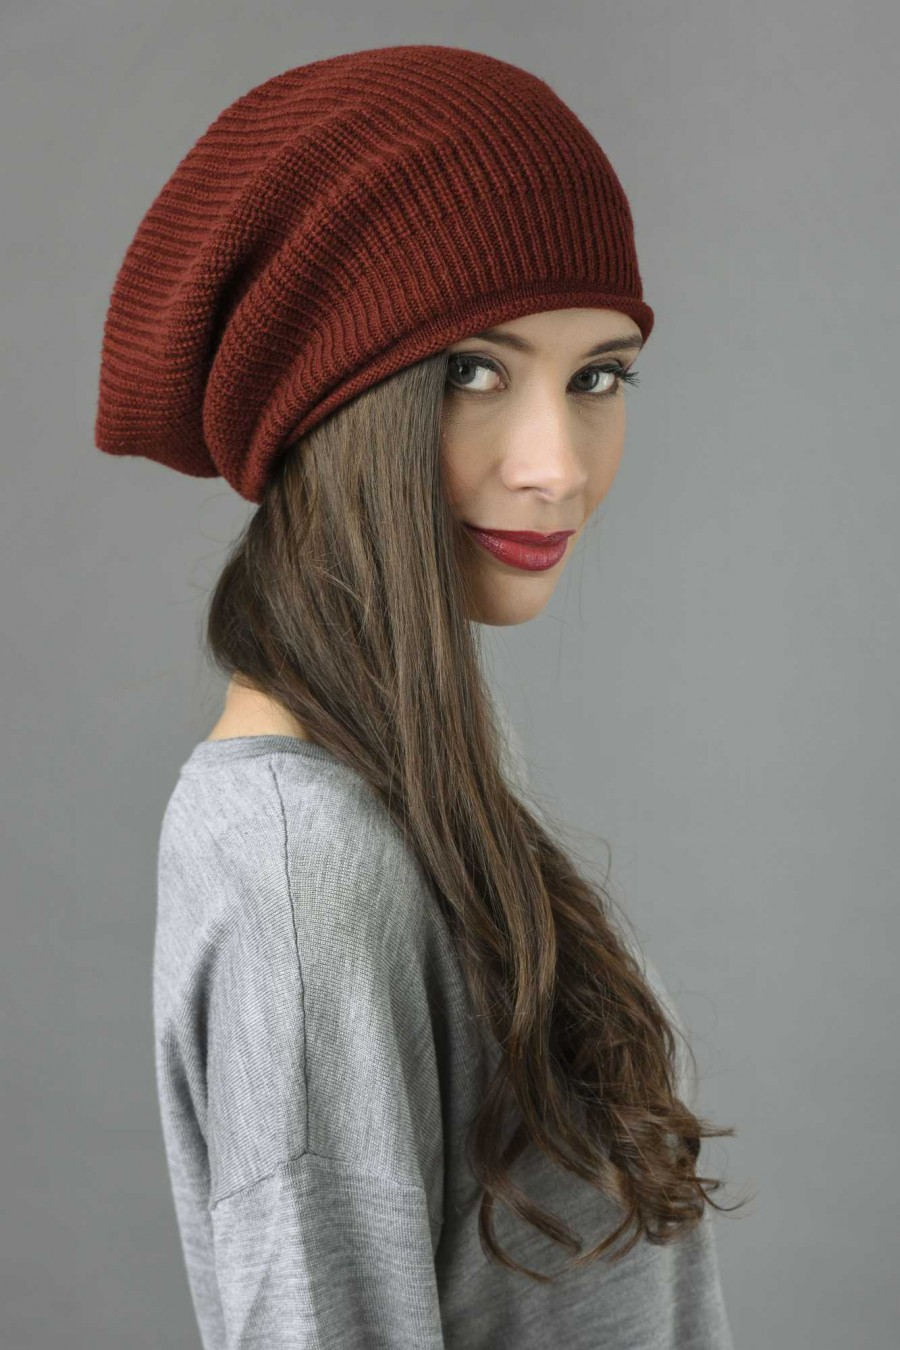 30440d0b3fc Pure Cashmere Ribbed Knitted Slouchy Beanie Hat in Bordeaux 2